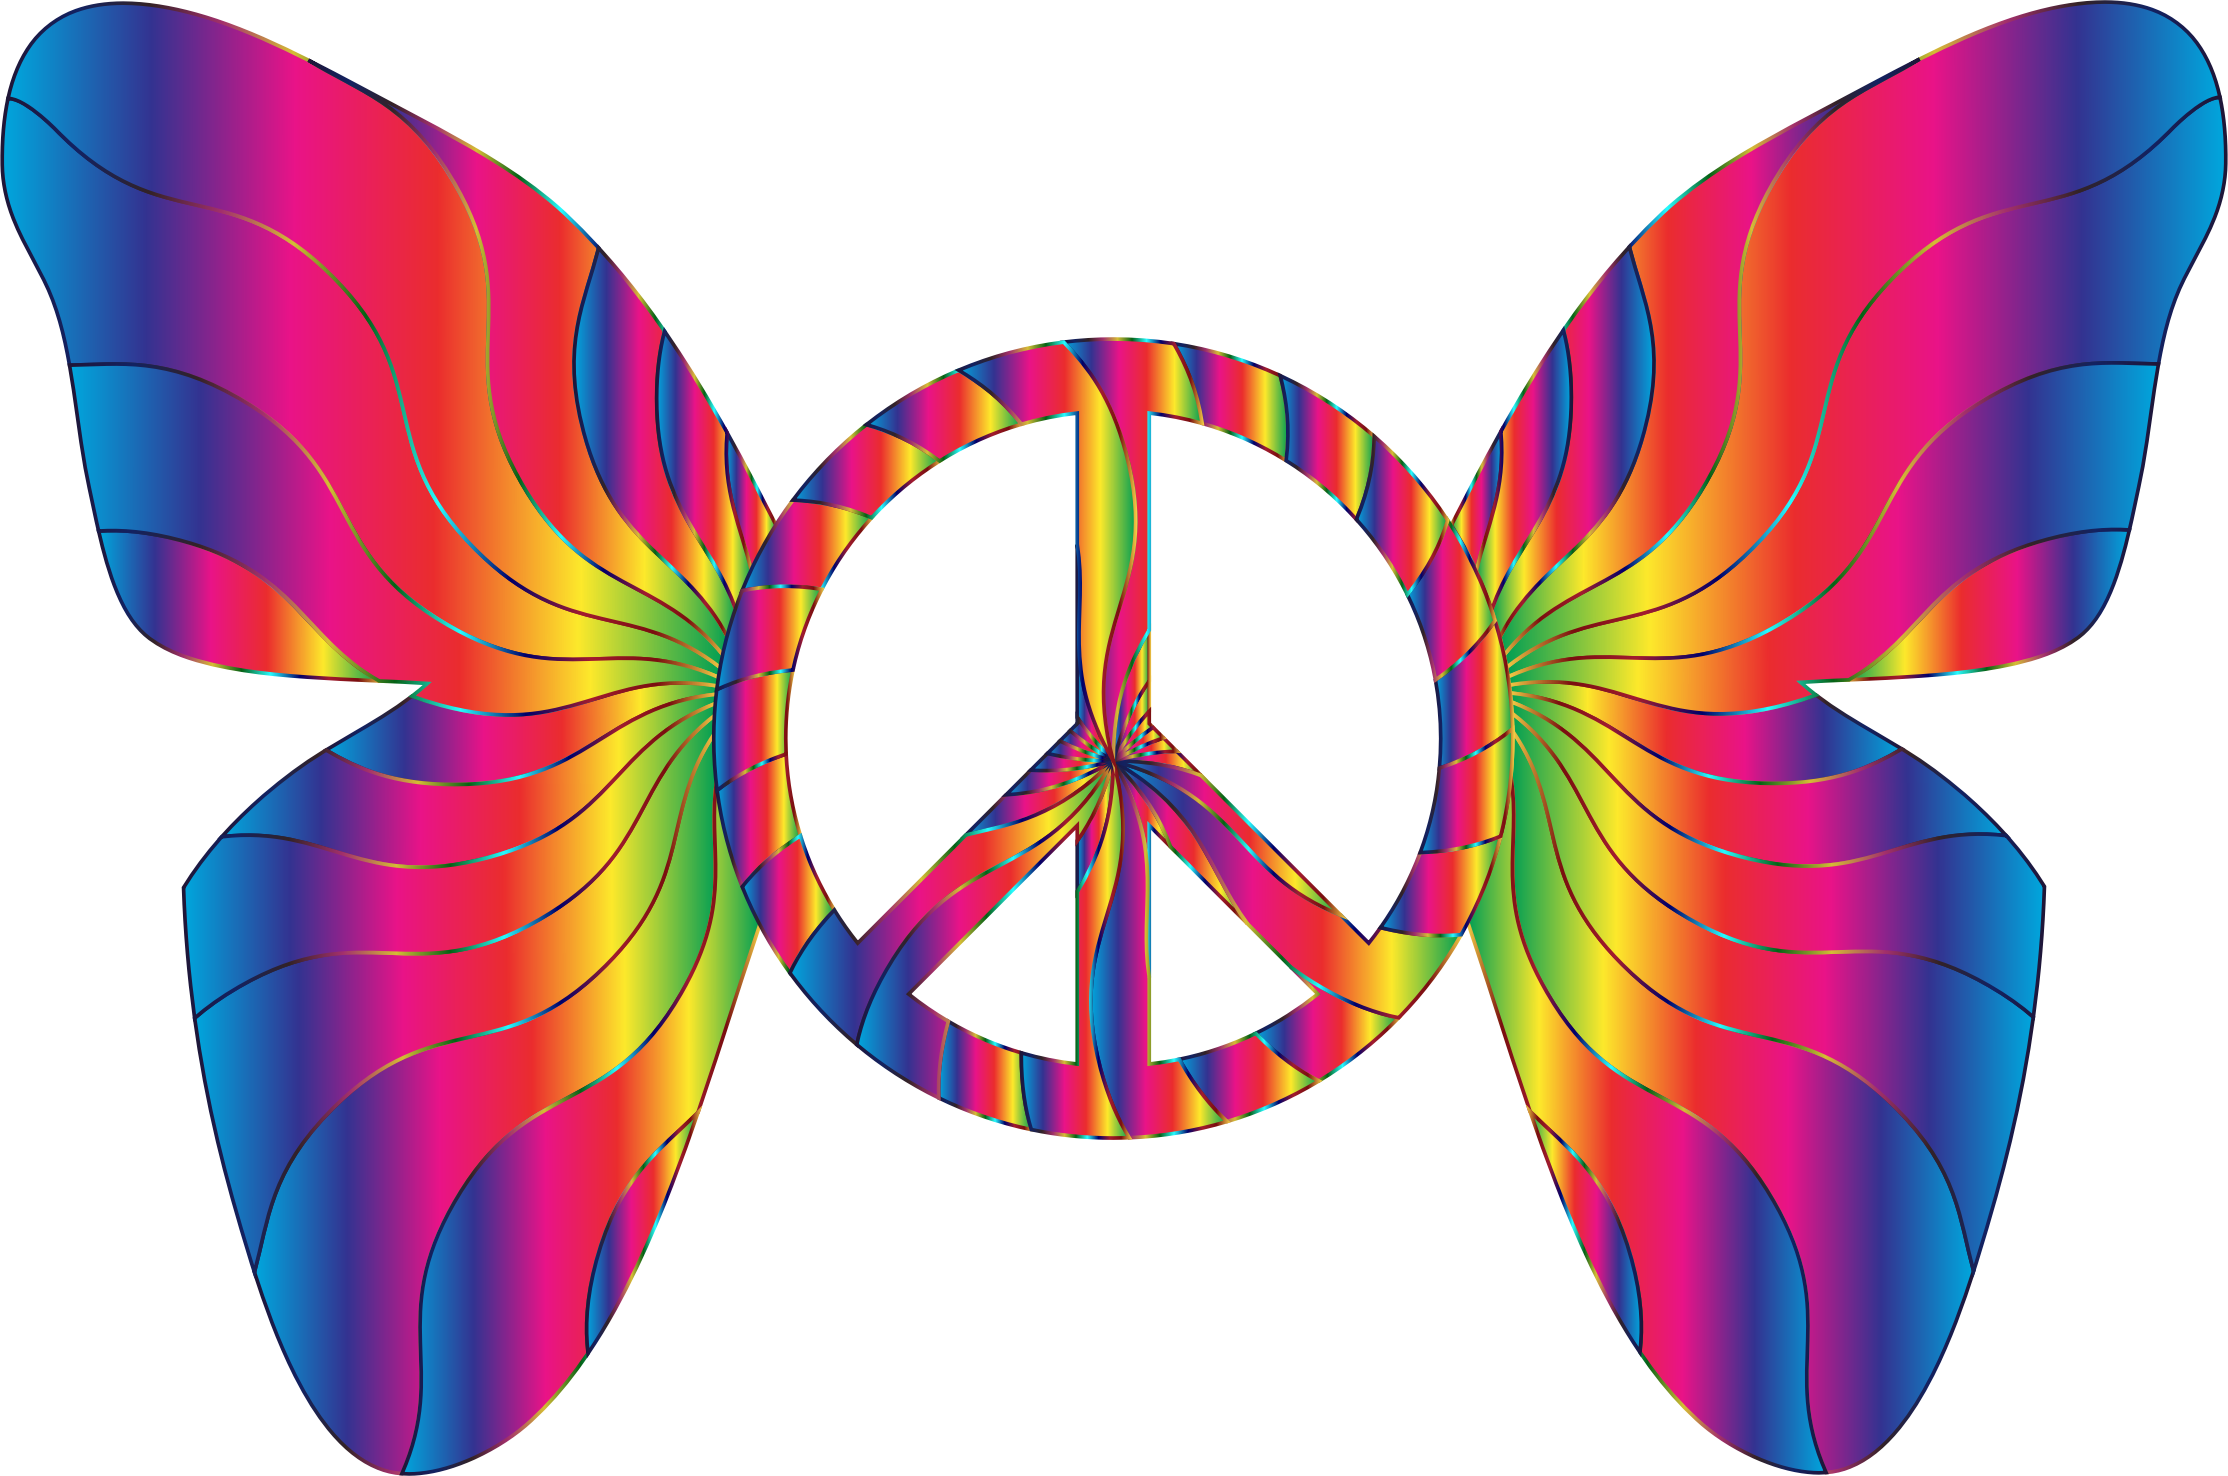 Peace sign images free download best peace sign images on 2228x1476 peace sign clipart groovy buycottarizona